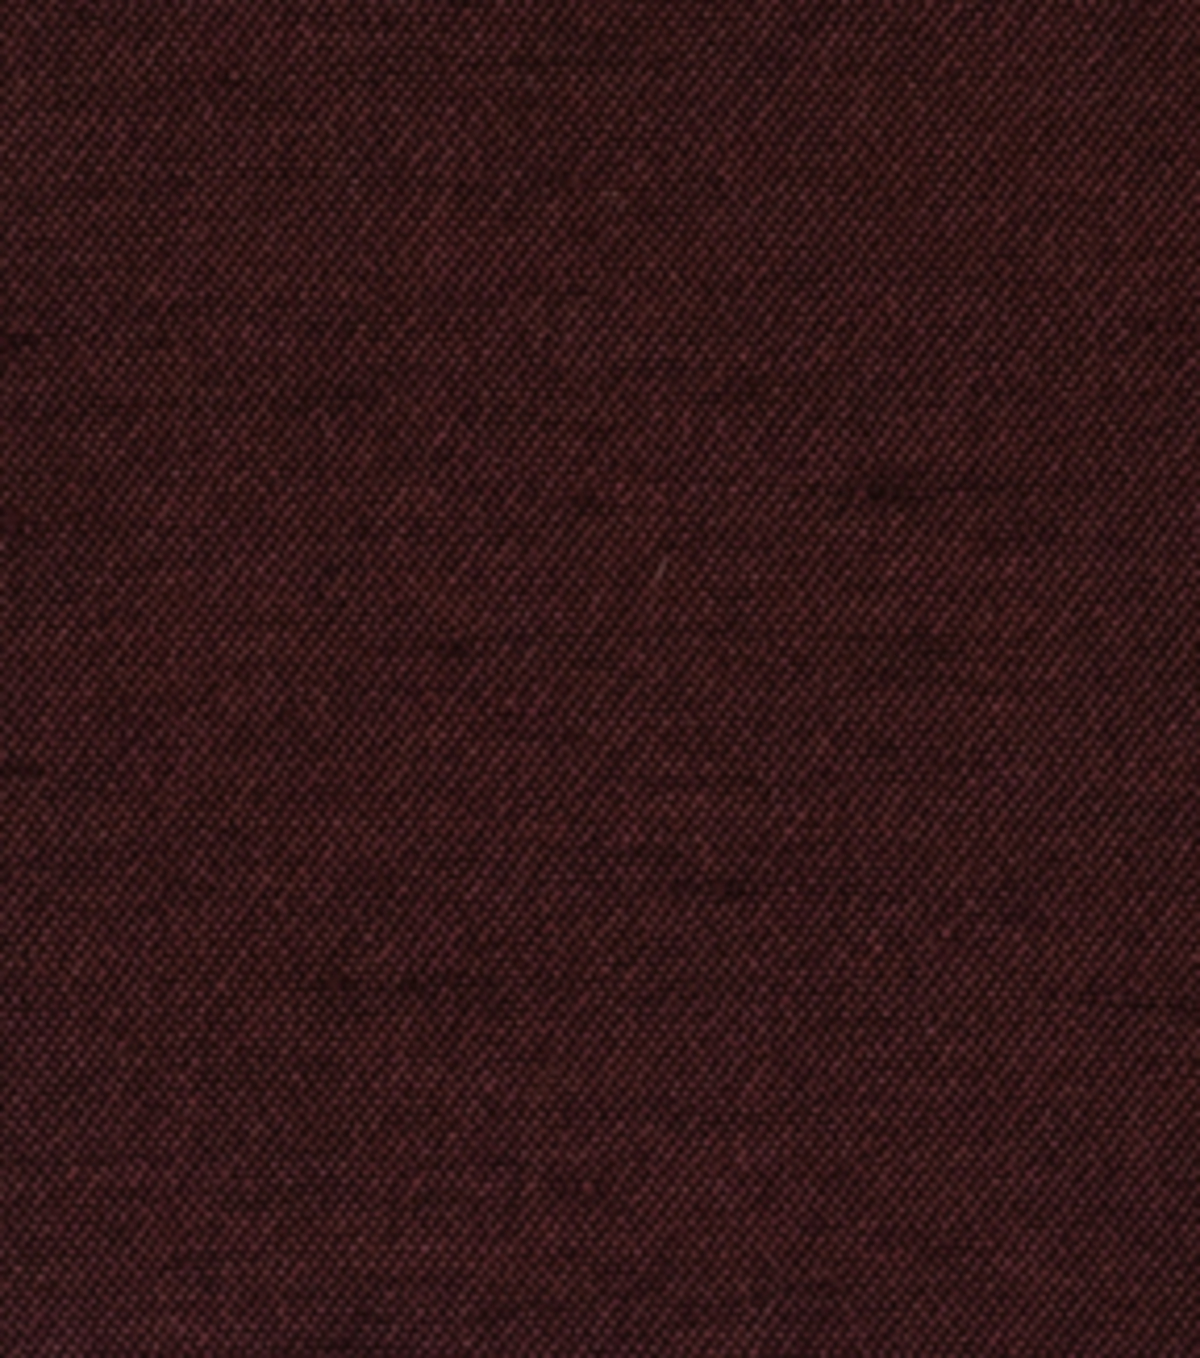 Home Decor 8\u0022x8\u0022 Fabric Swatch-Signature Series Antique Satin Plumwine